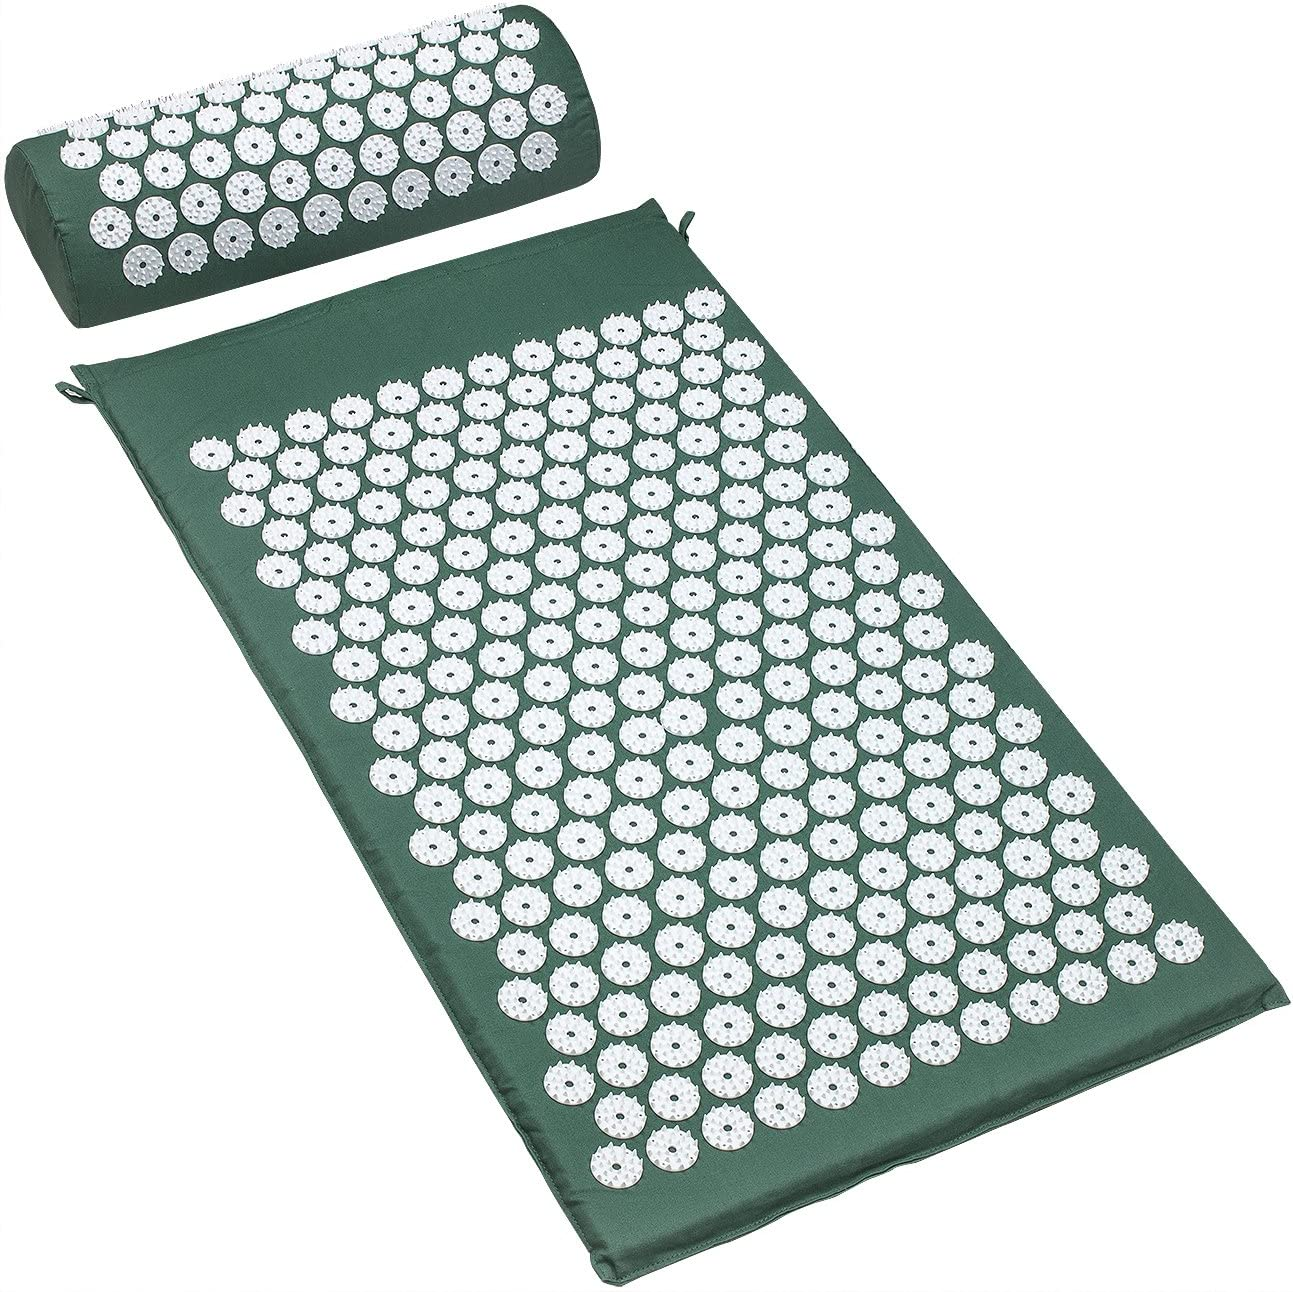 Acupressure Mat and Pillow Set, Back Pain Treatment & Neck Pain Relief - Green